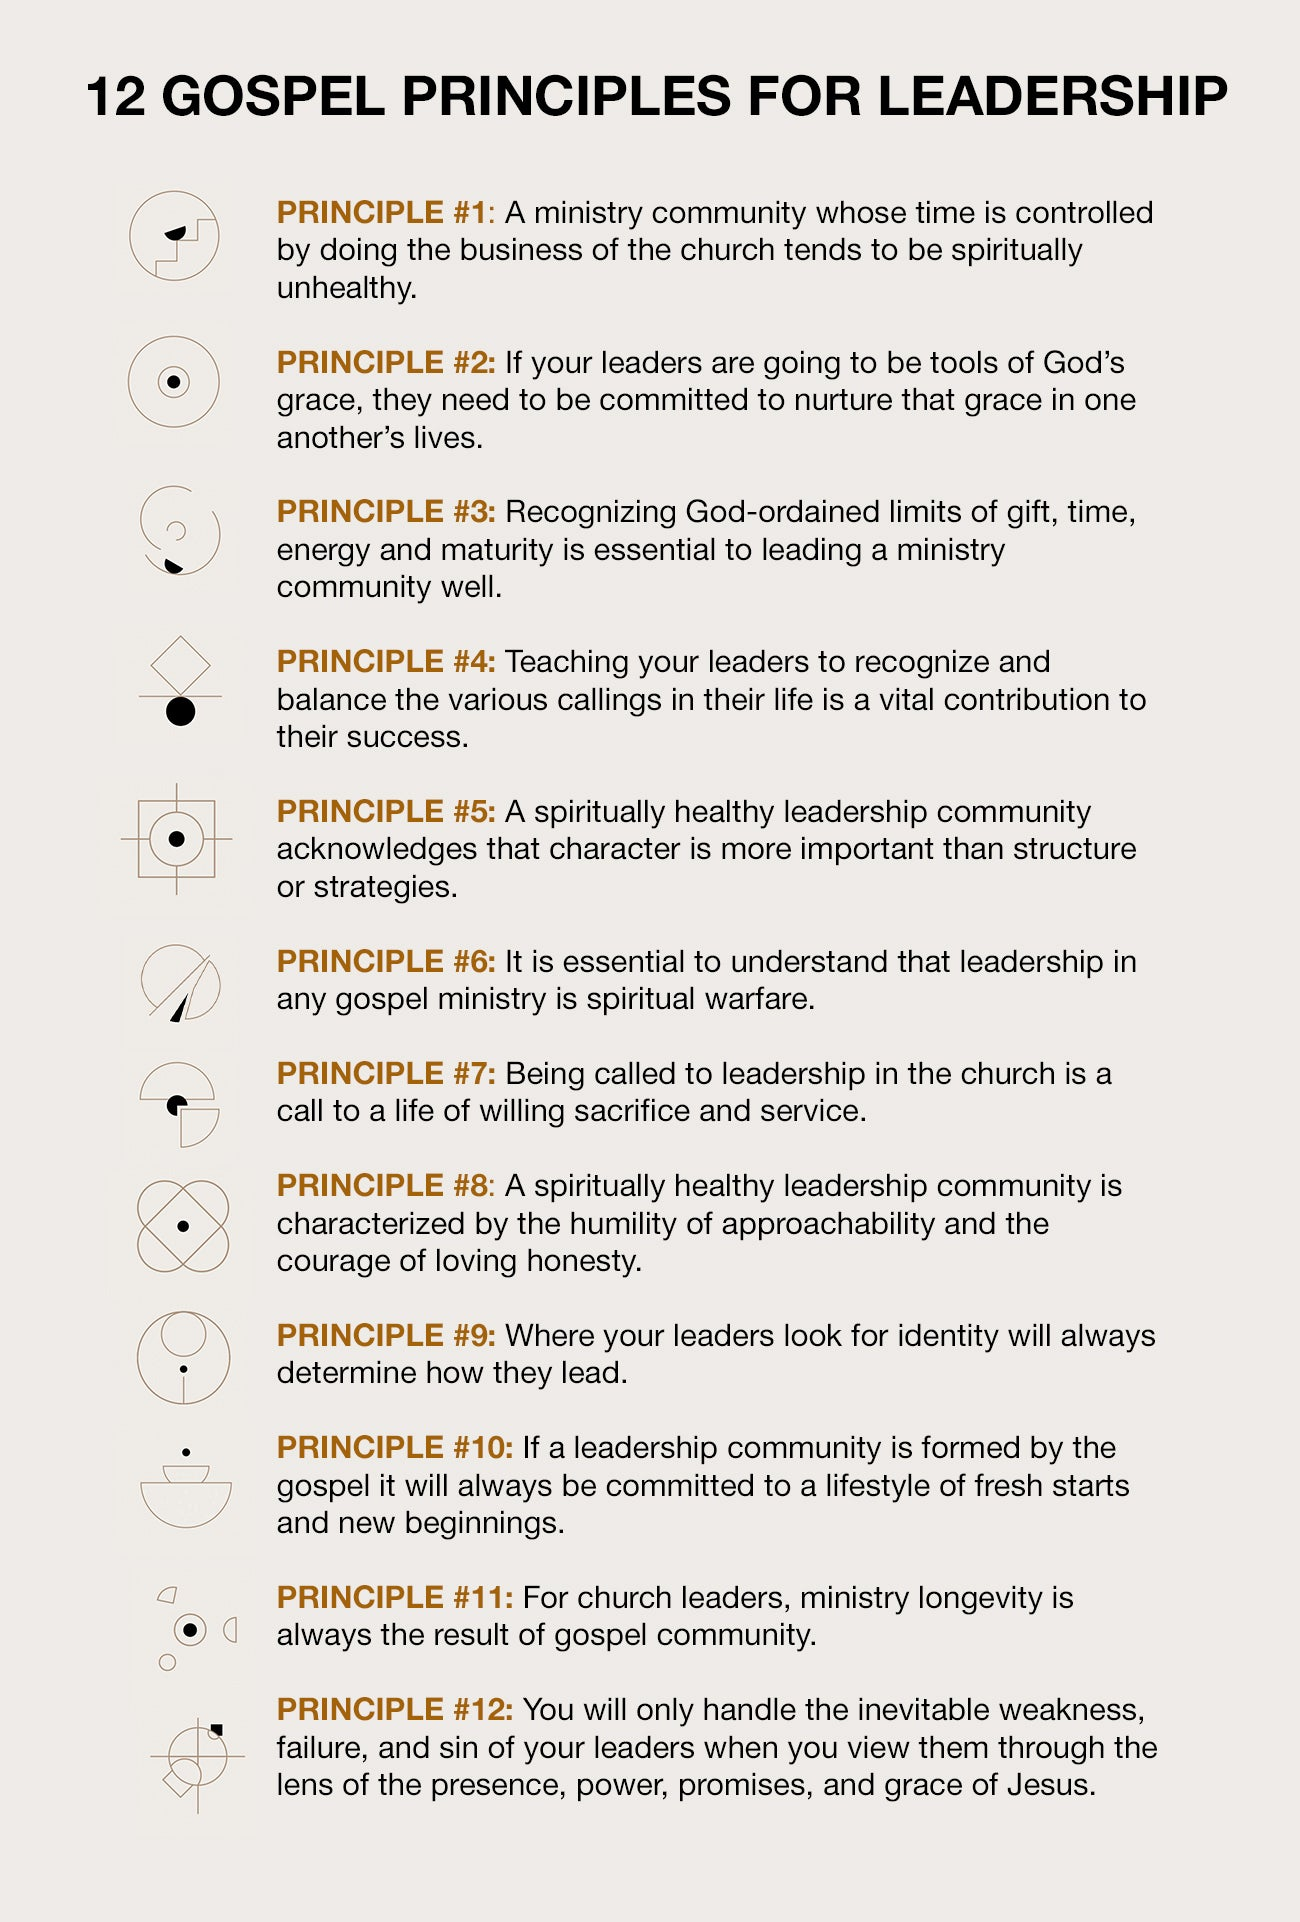 12 Gospel Principles for Leadership